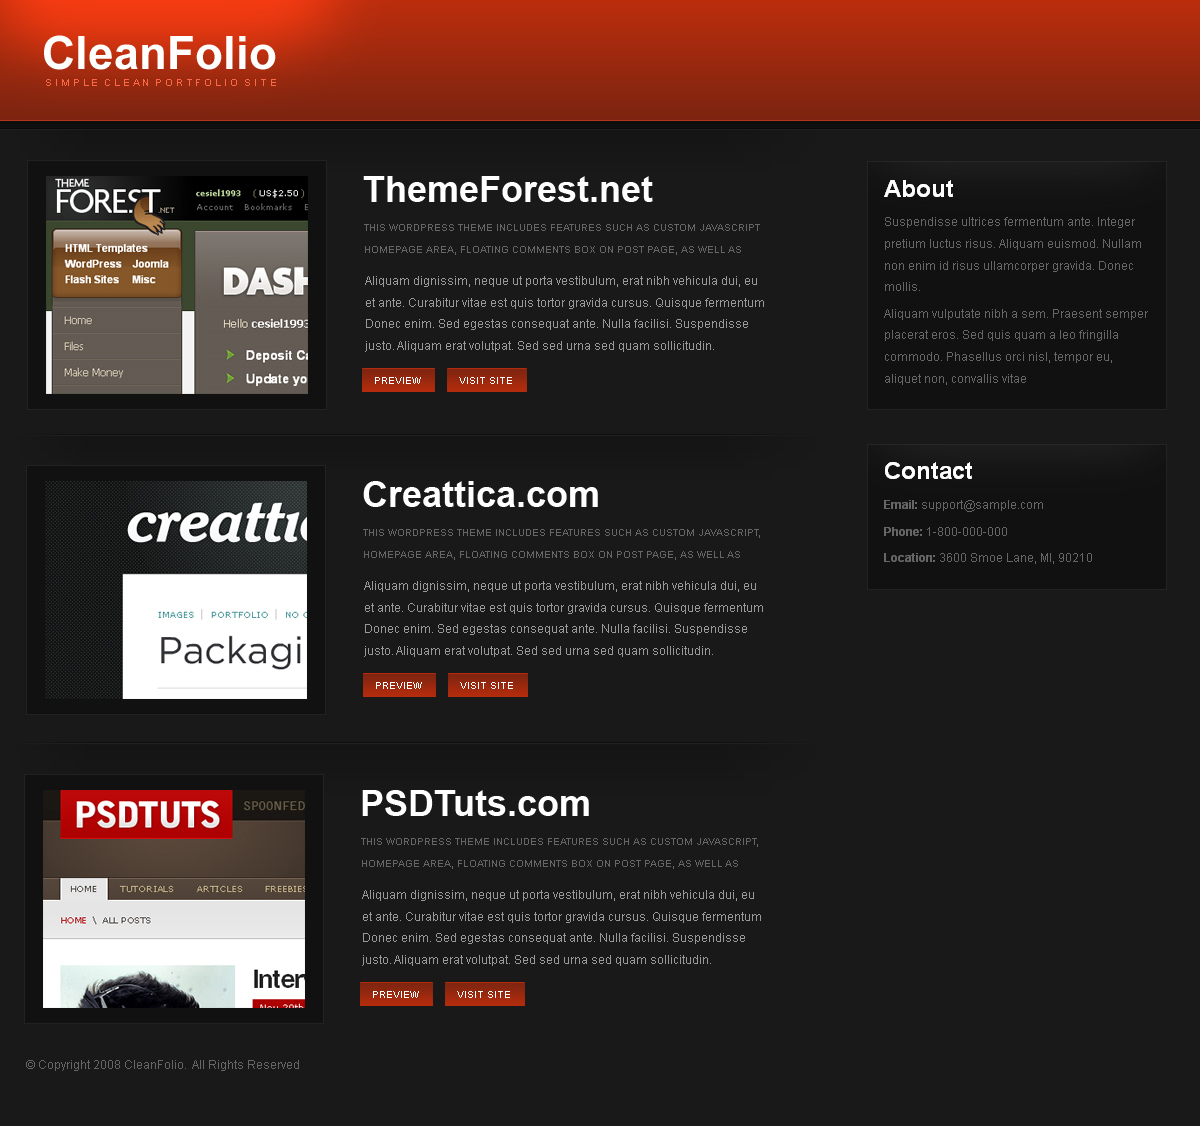 CleanFolio Dark - This is the Red version of CleanFolio Dark.  This template has 1 page that includes Lightbox Image Viewer for the preview bottom and lots of formatting for buttoms, links, paragraphs and more.